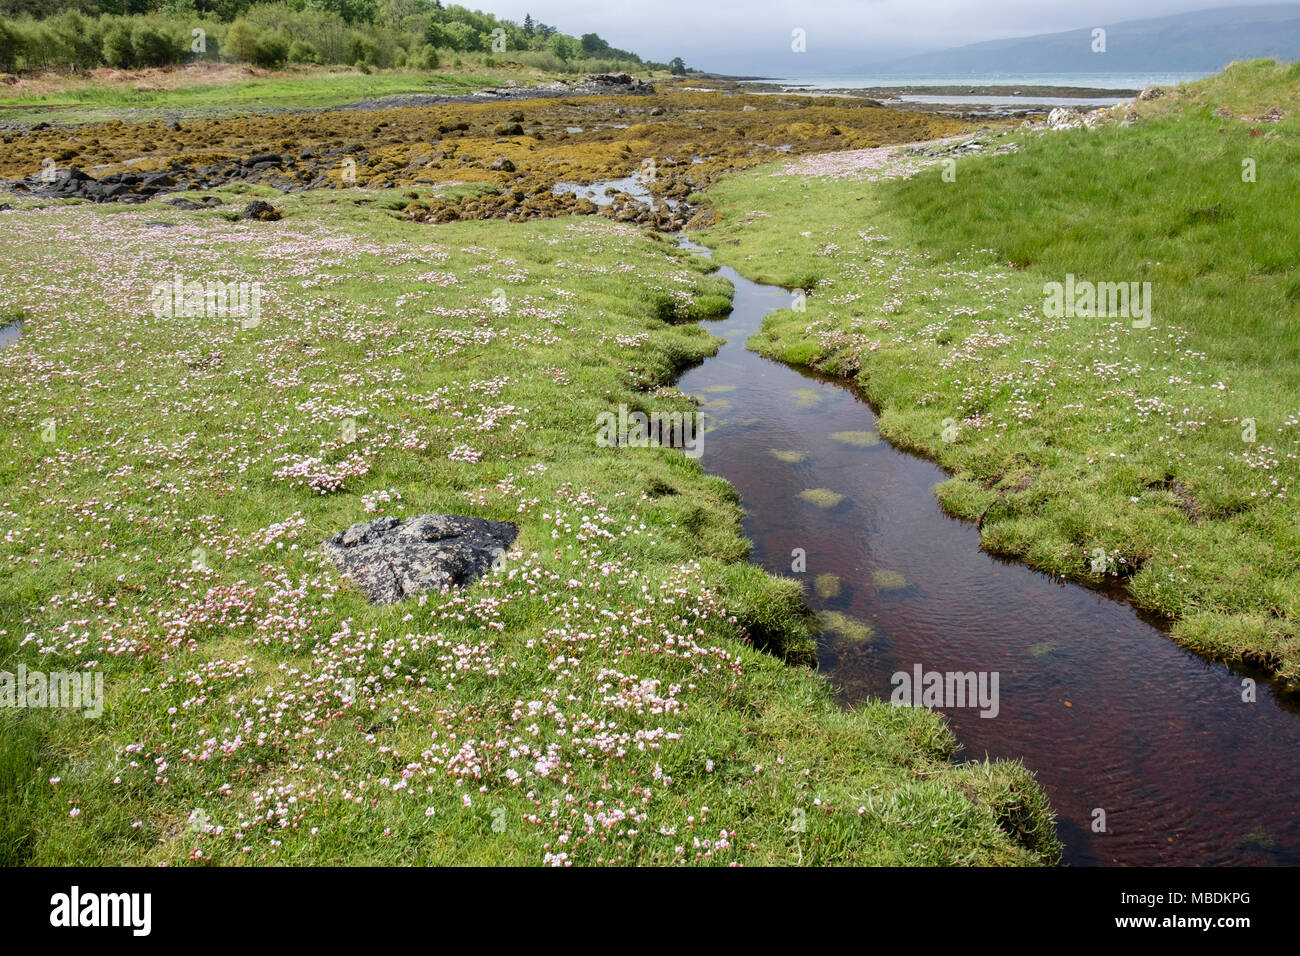 Sea pinks thrift armeria maritima flowers flowering by tide sea pinks thrift armeria maritima flowers flowering by tide pools on saltmarsh at low tide in june isle of mull hebrides western isles scotland mightylinksfo Image collections